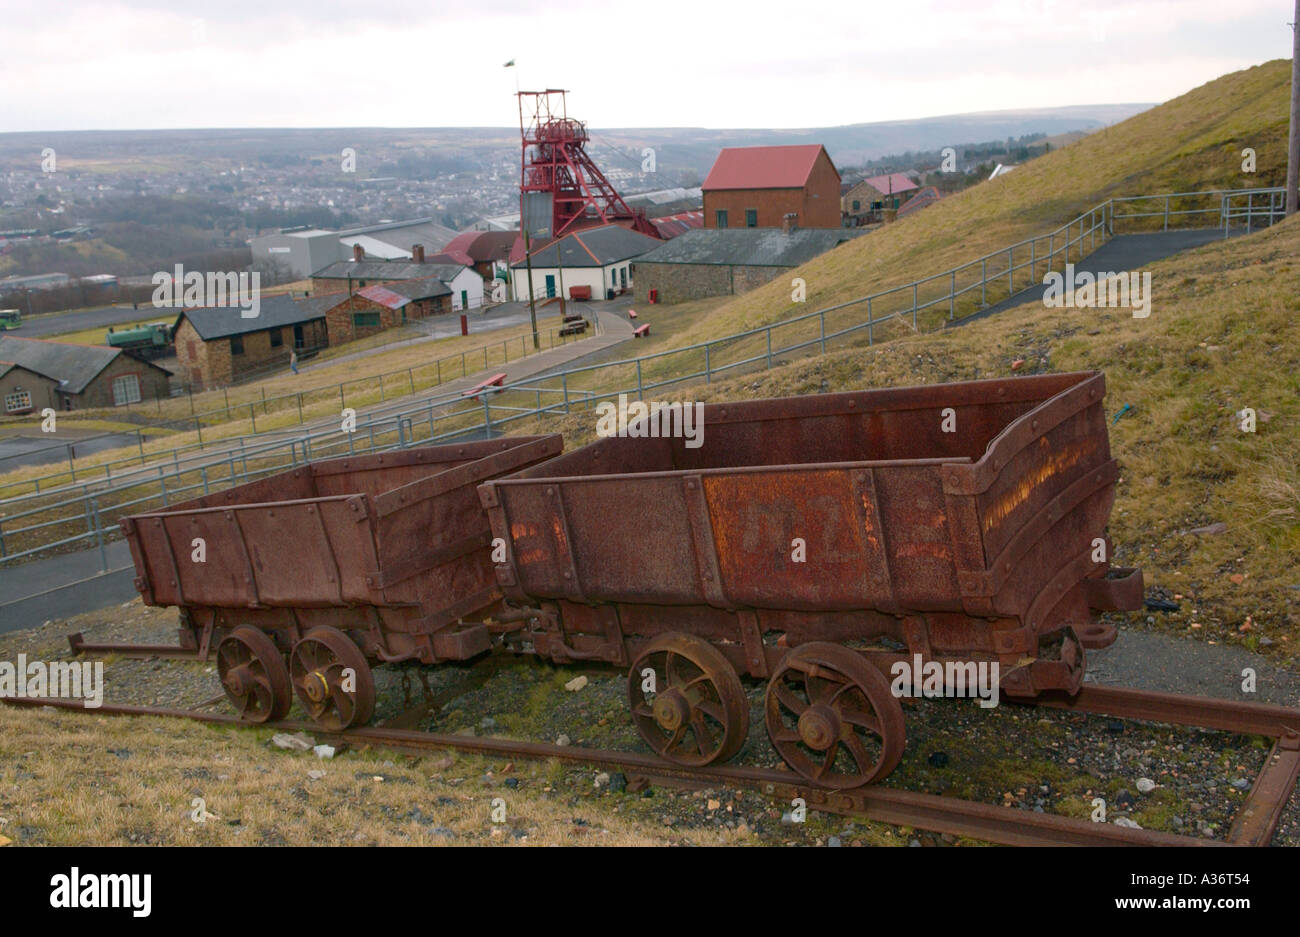 a history of eppleton colliery the oldest coal mines in europe In south east europe 2003 - 2006  senje is serbia's oldest coal mine, complete with shafts, workshops and  (1853 the first shaft in the history of coal mining.